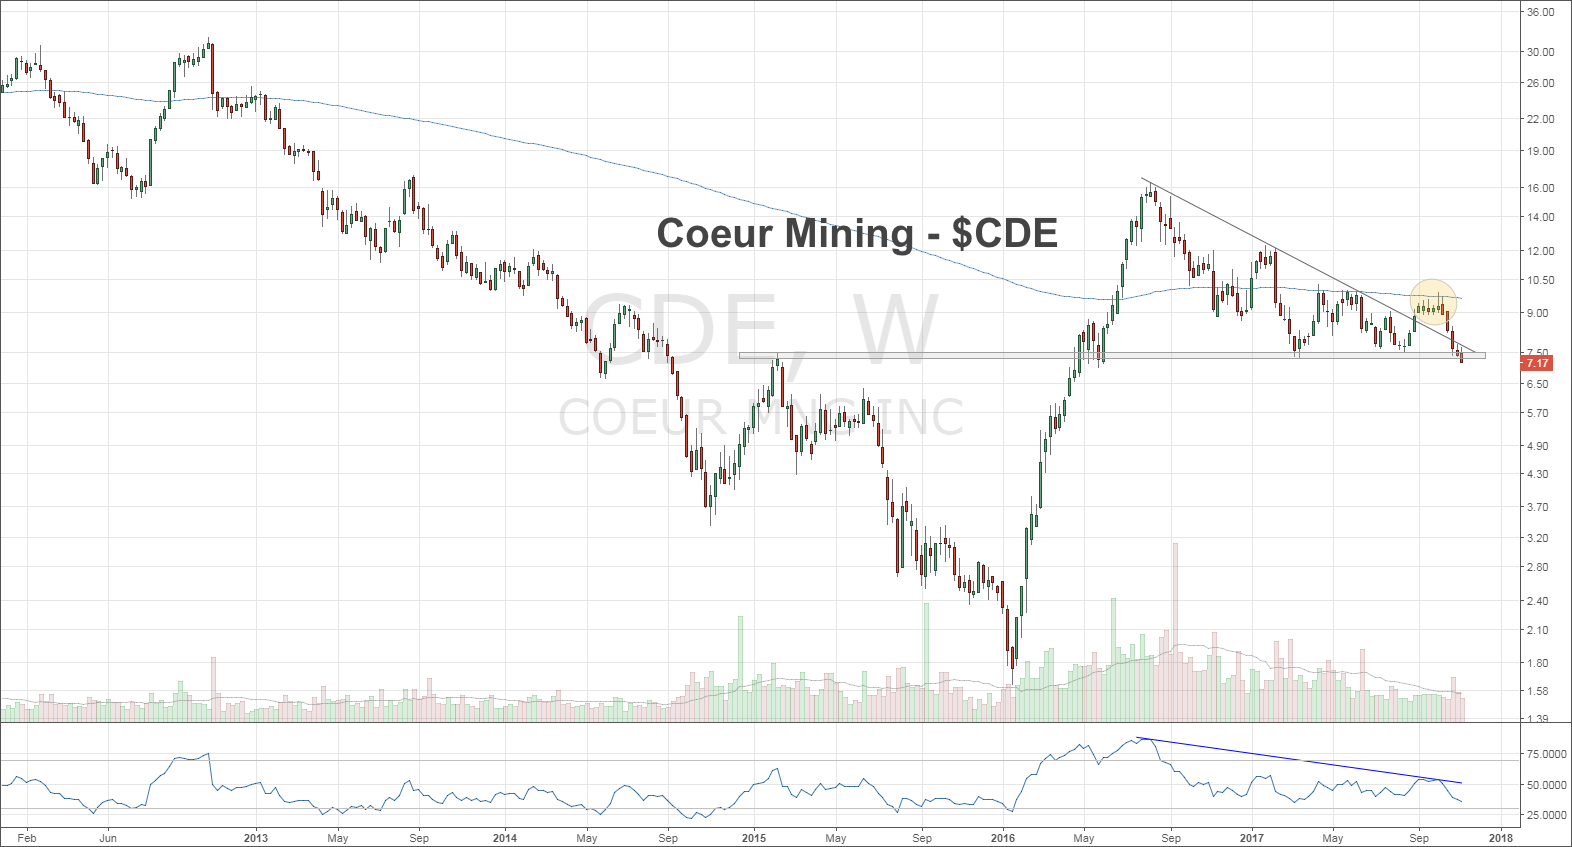 coeur mining stock chart cde price support buy_investing_news_november 14